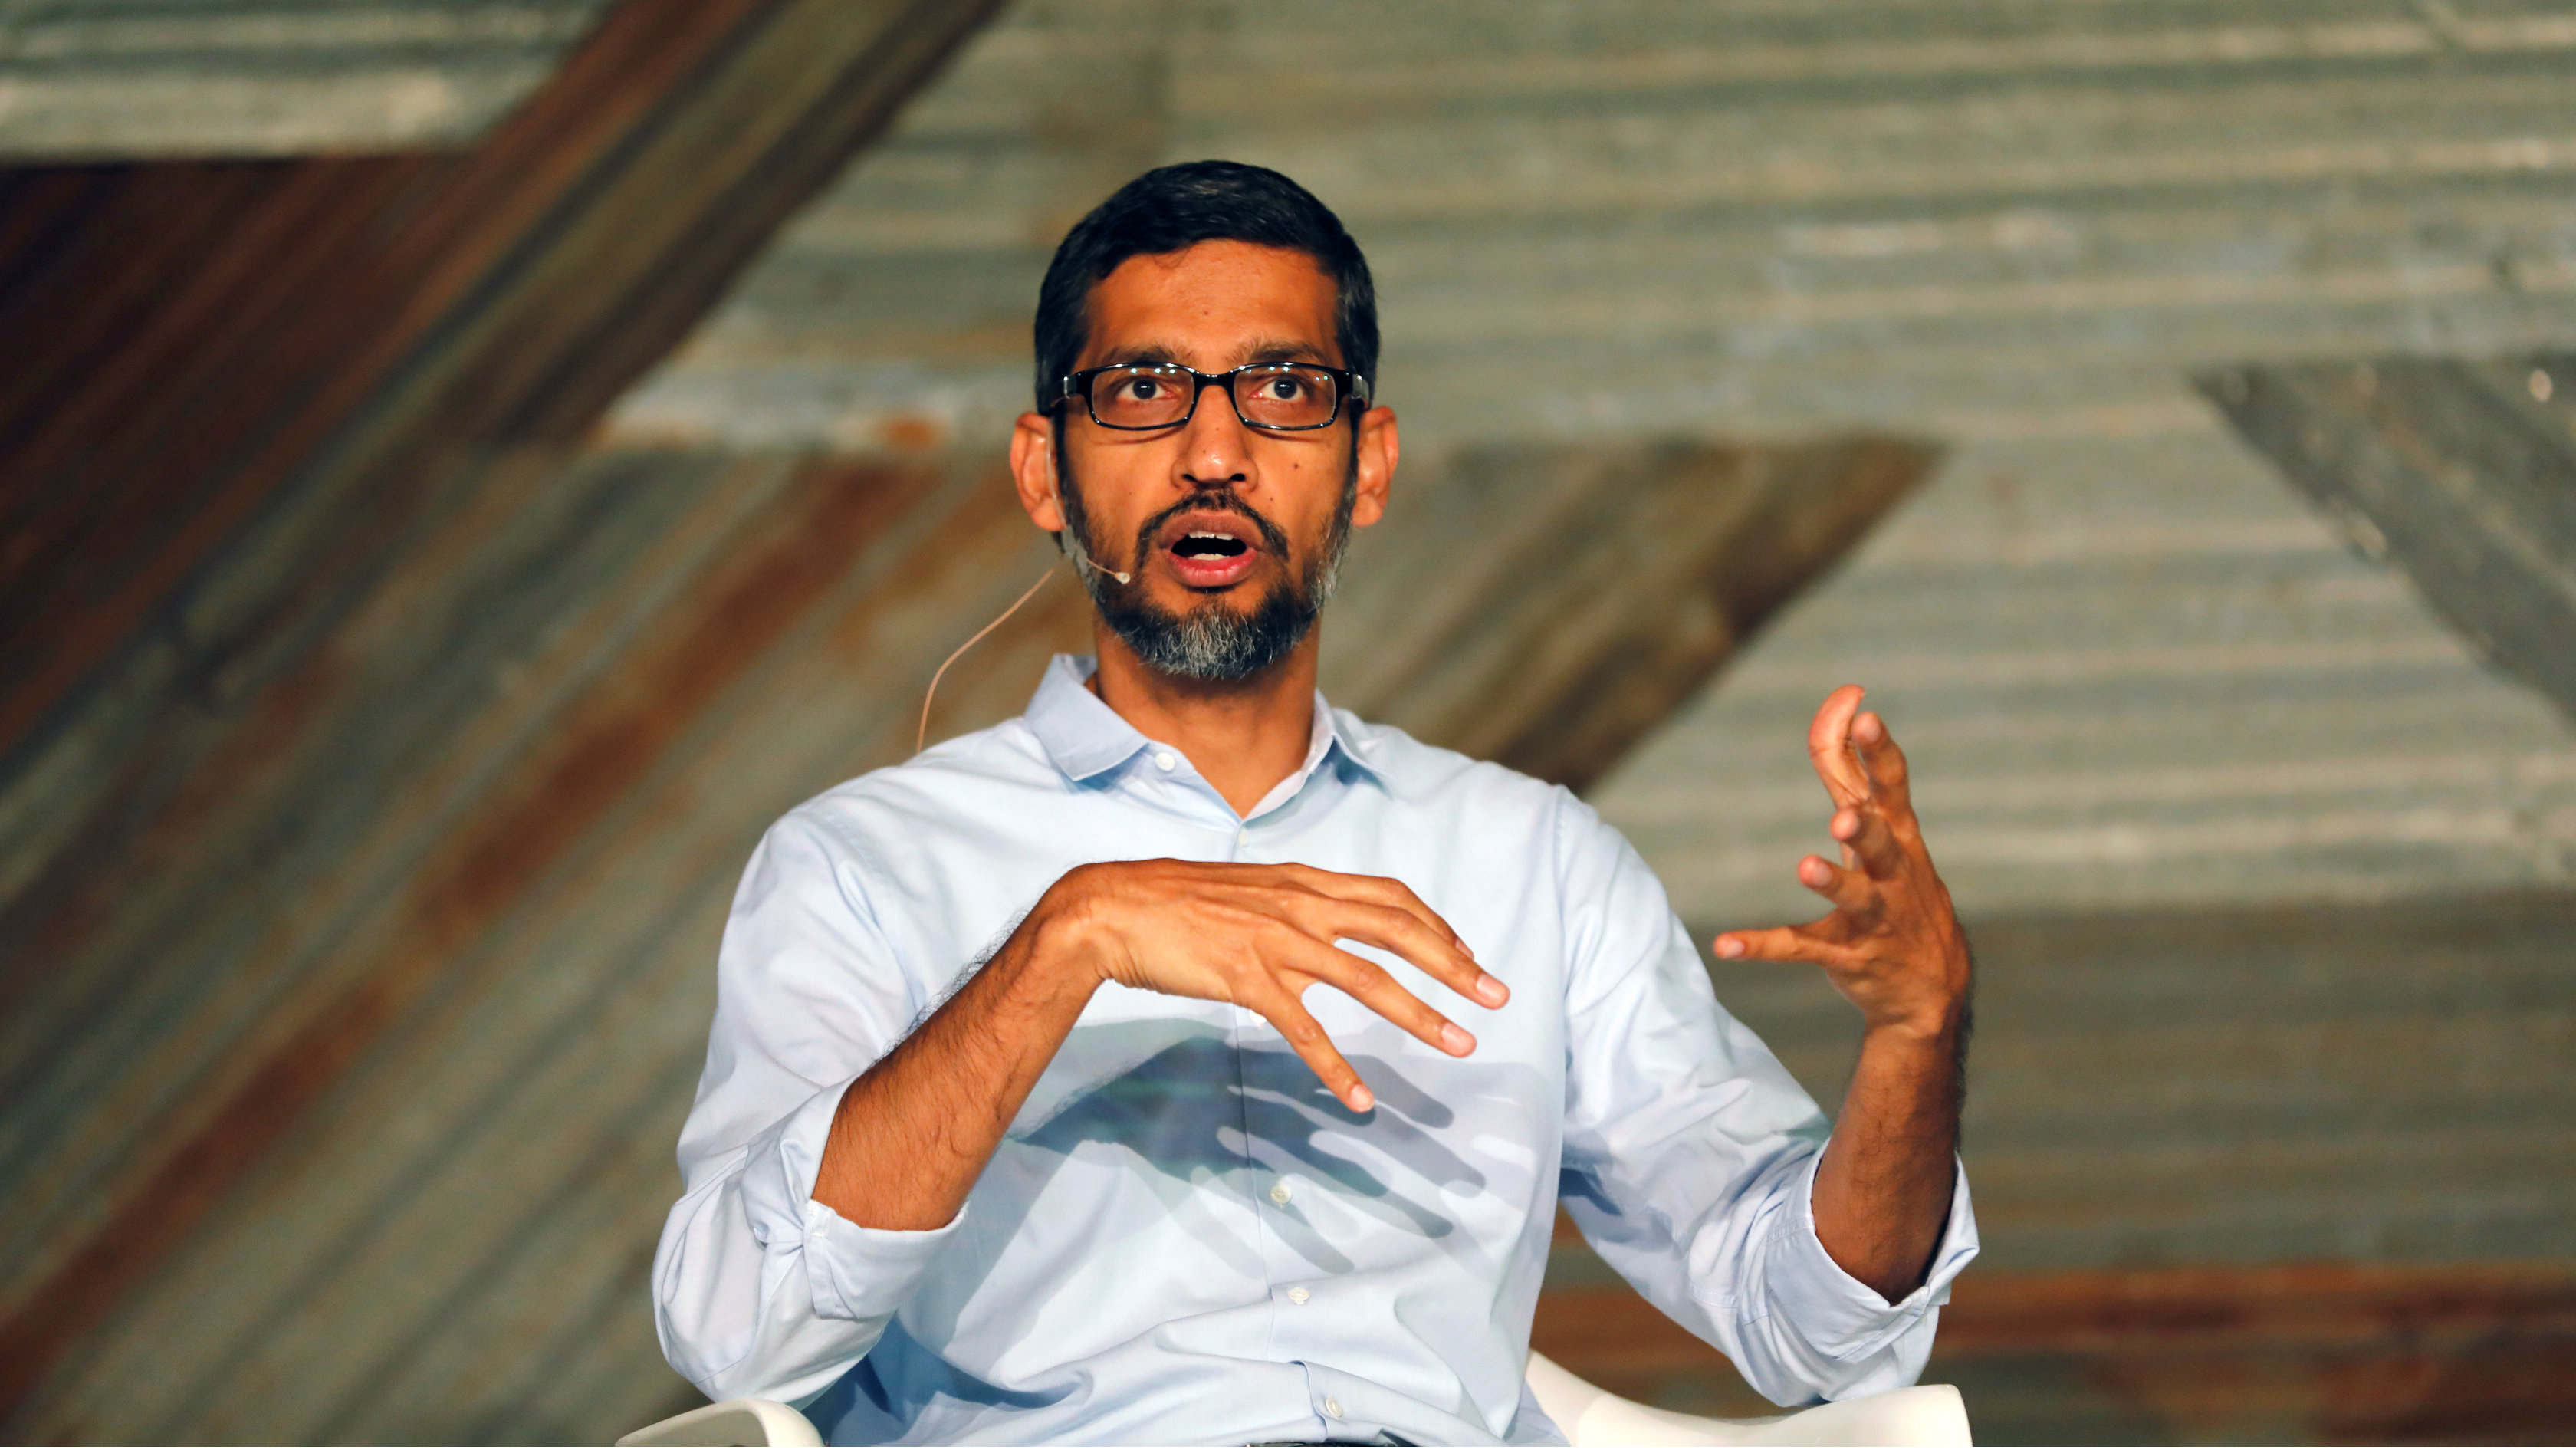 Google's CEO Sundar Pichai speaks on stage during a conference tagged 'Google for Nigeria' in Nigeria's commercial capital Lagos, July 27, 2017.